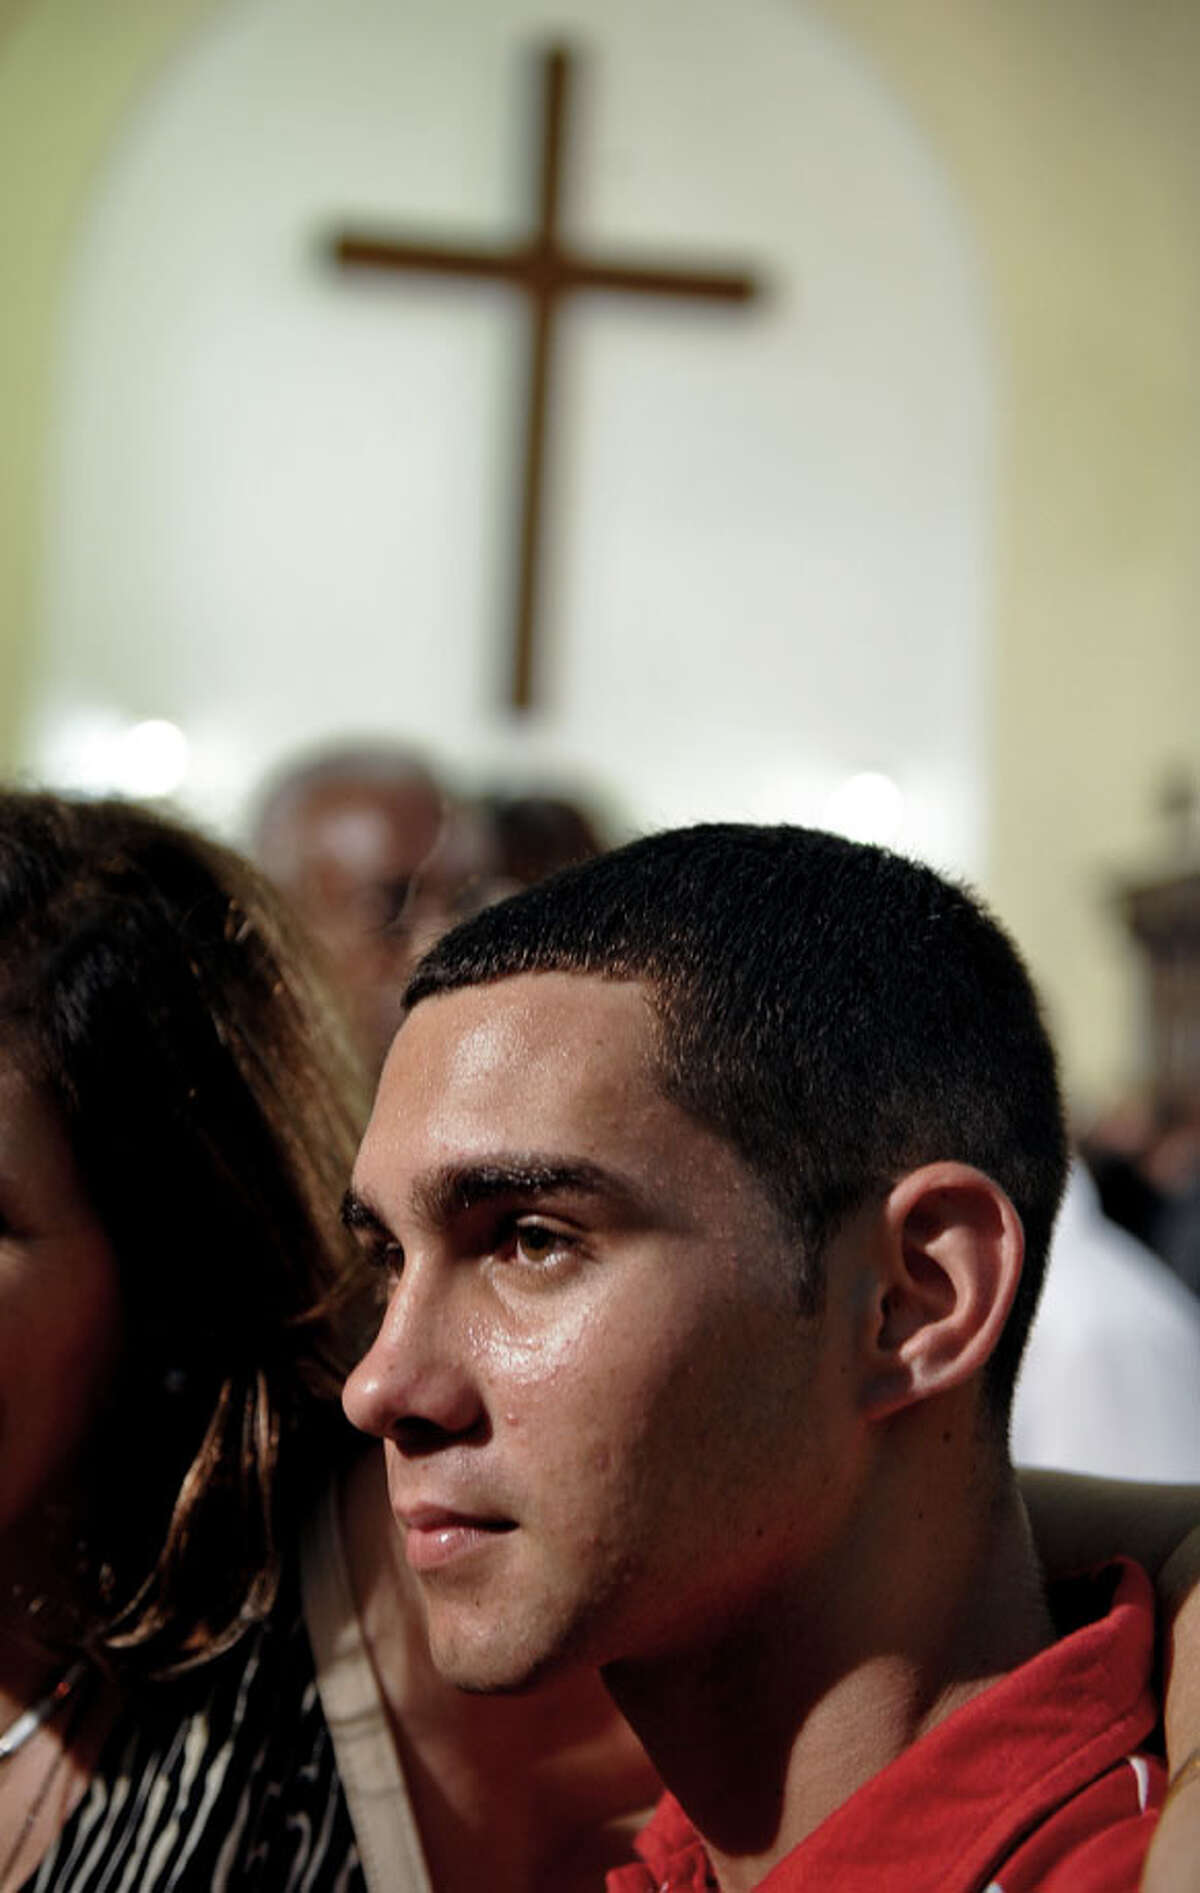 Cuban rafter-boy Elian Gonzalez (R), on June 30, 2010 in a church of Havana, during the celebration of 10th Anniversary of his return from Miami. AFP PHOTO/ADALBERTO ROQUE